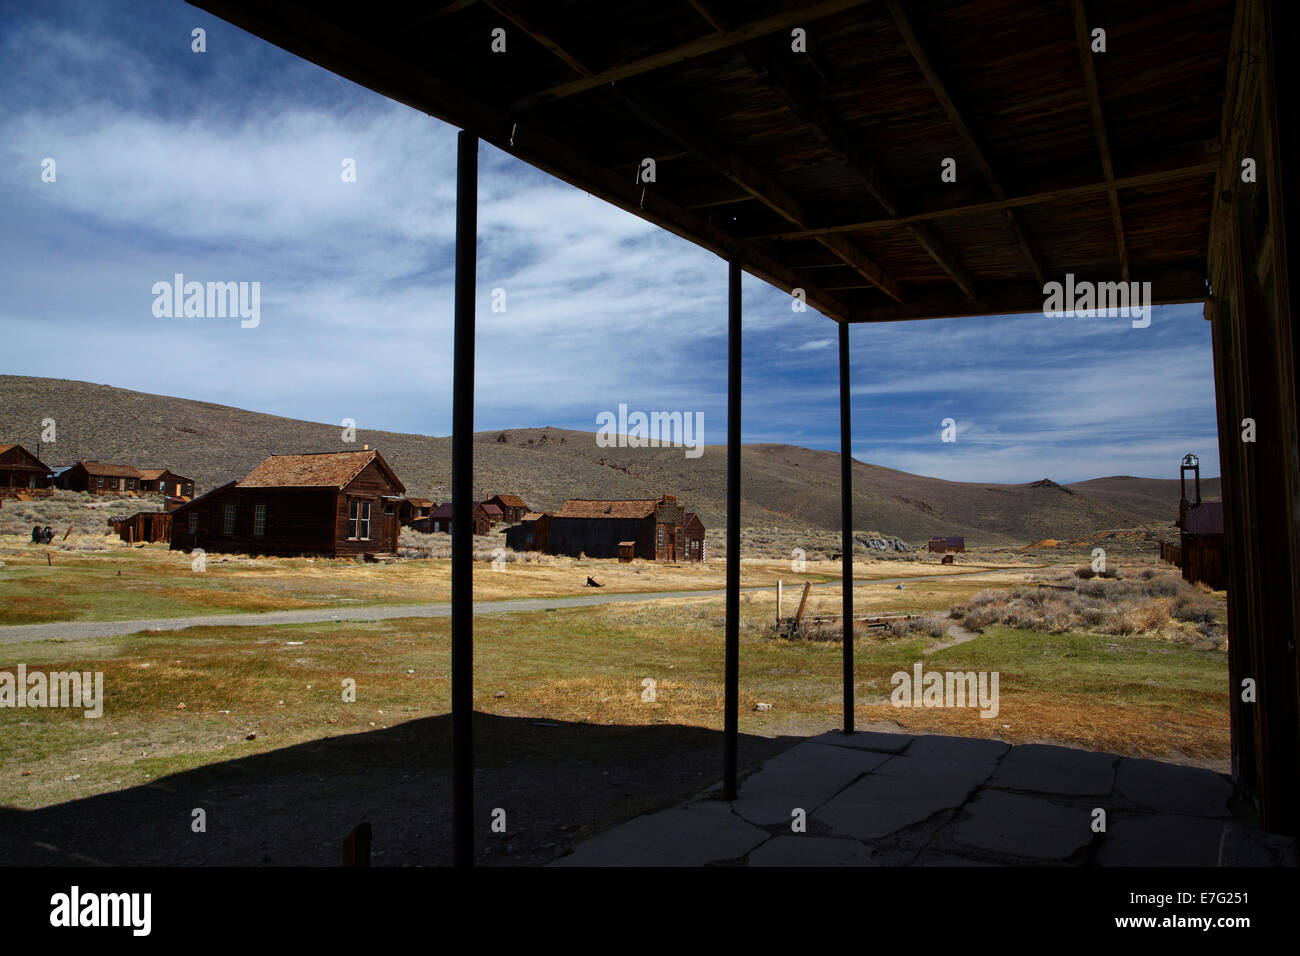 Old buildings seen from under the verandah of the Wheaten and Hollis Hotel, Bodie Ghost Town, Eastern Sierra, California, - Stock Image